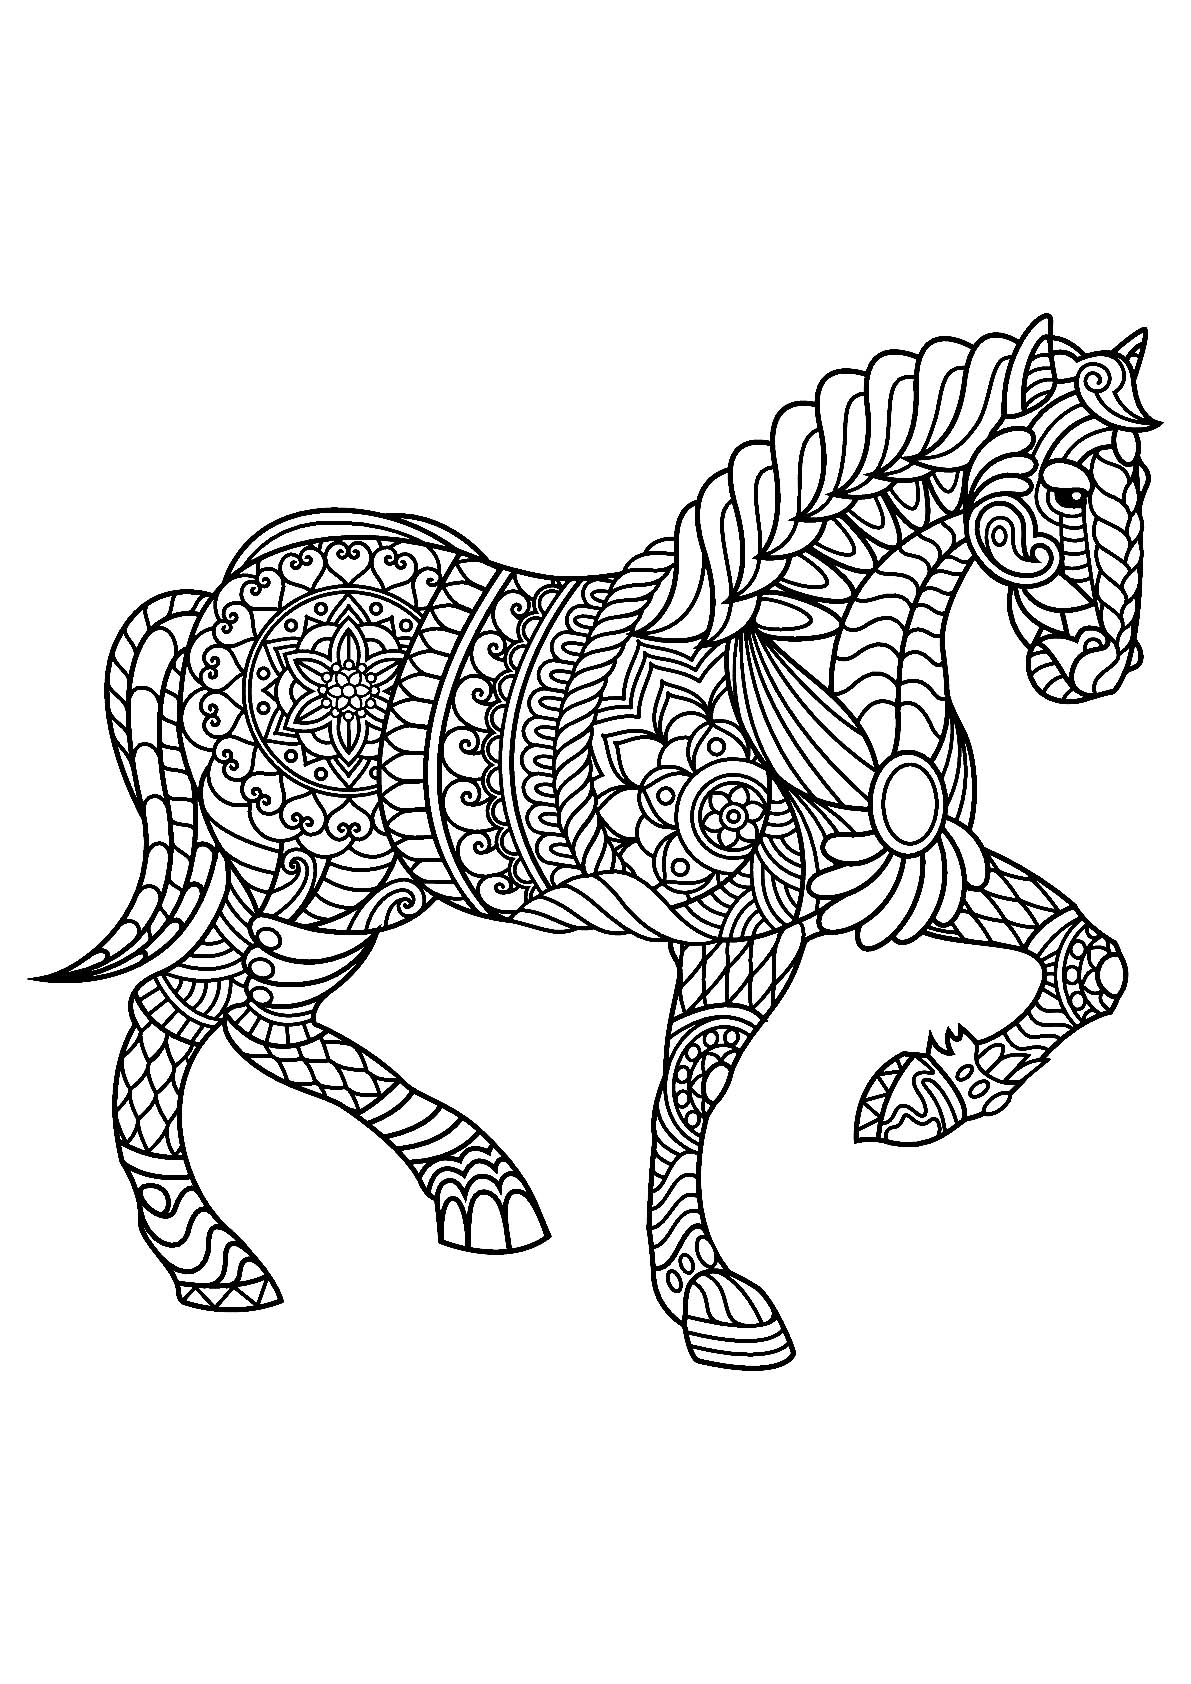 horse coloring pages for kids horse coloring pages 2019 best cool funny for kids pages coloring horse